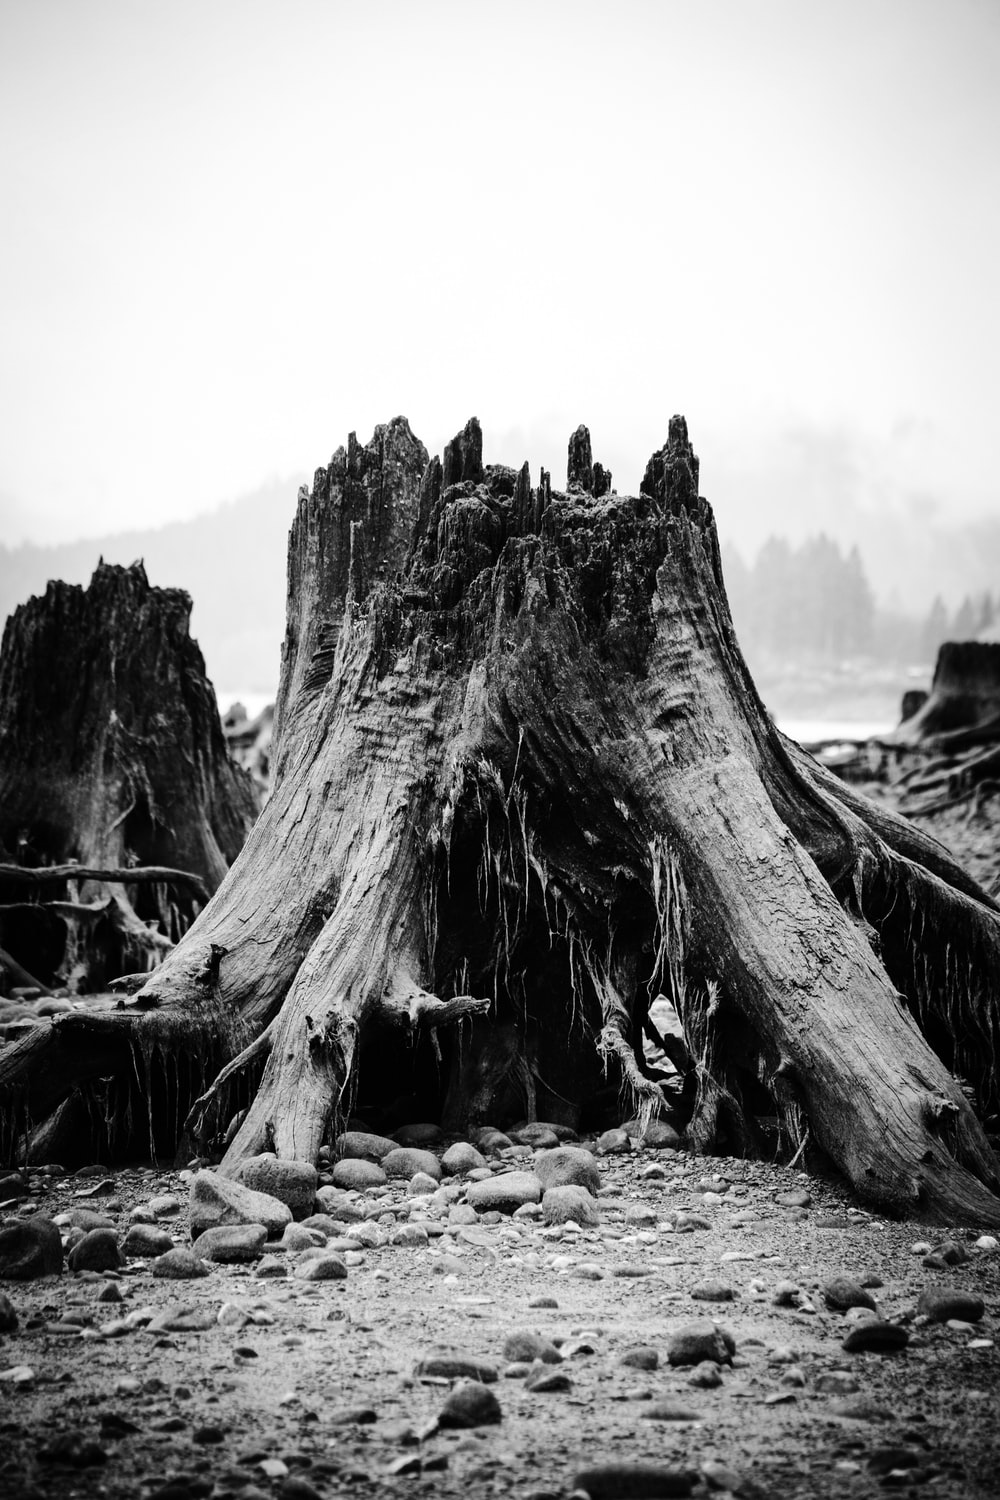 grayscale photography of cut tree log